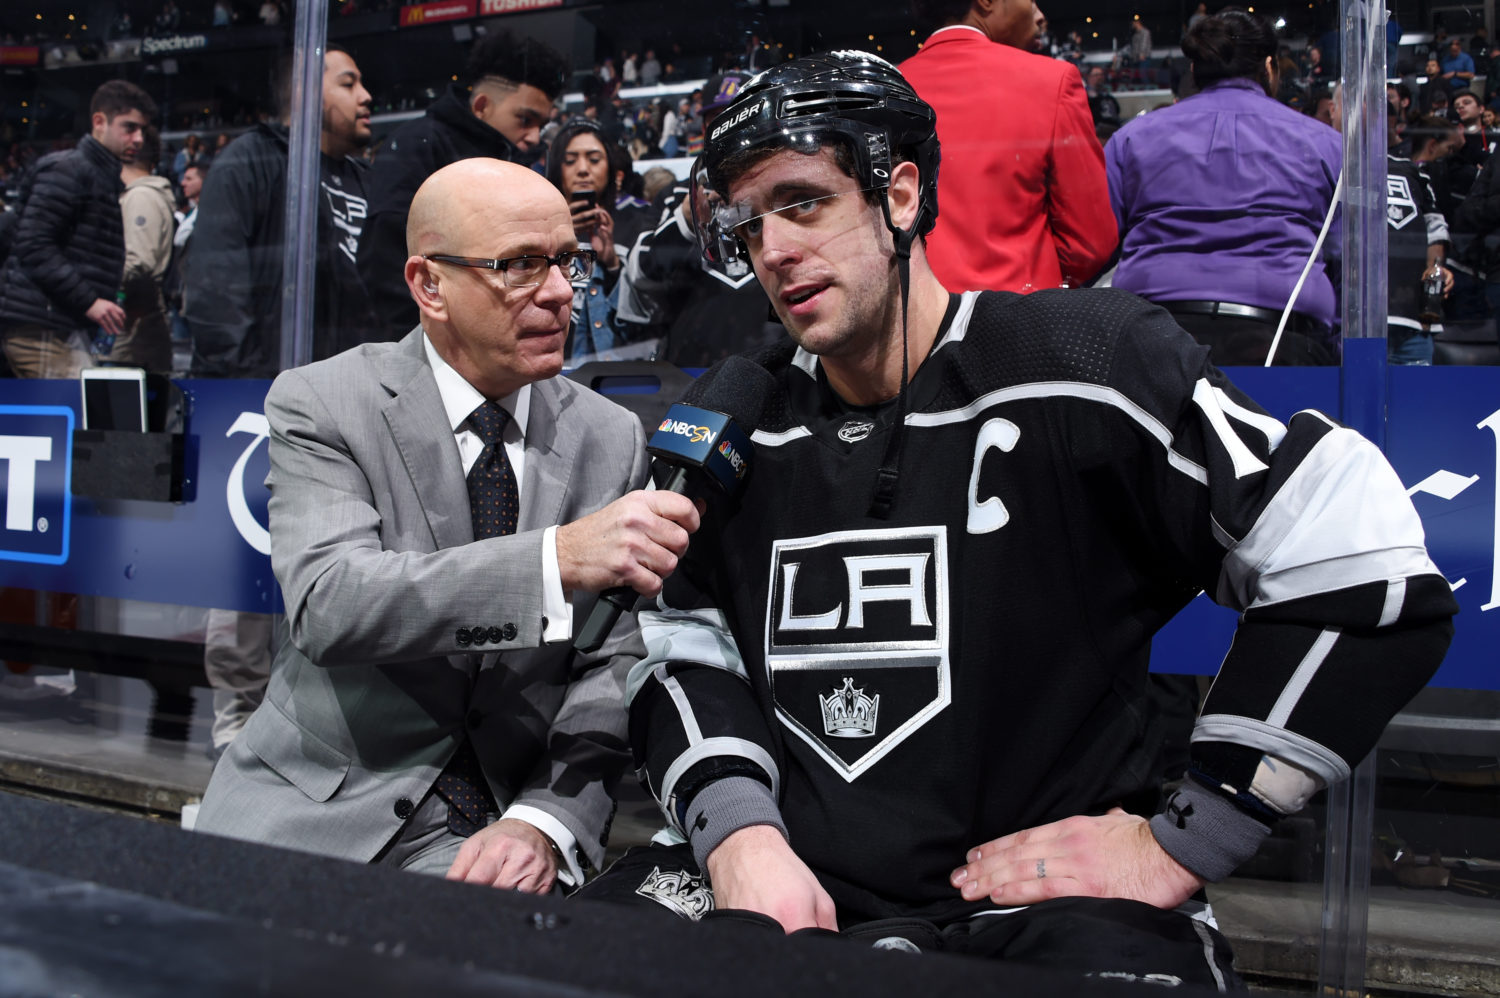 Seven LA Kings games to be broadcast nationally by NBC/NBCSN - LA Kings Insider